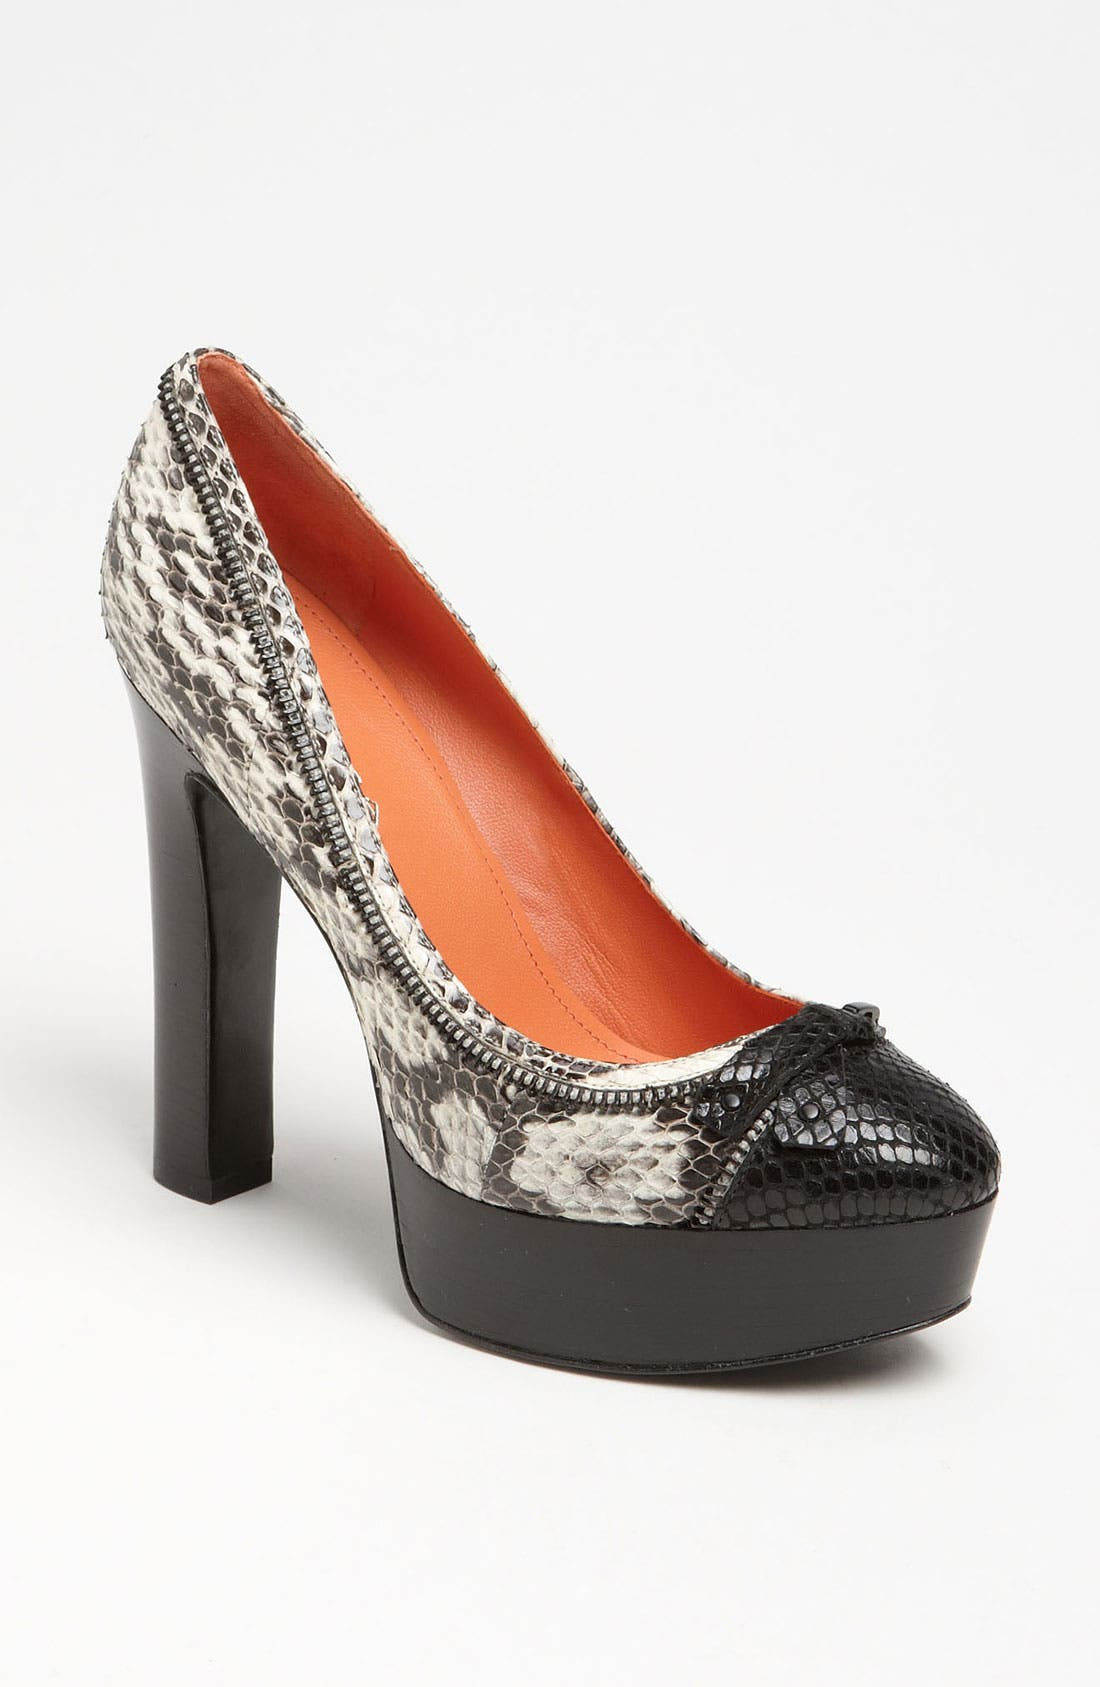 Main Image - Via Spiga 'Jennifer' Pump